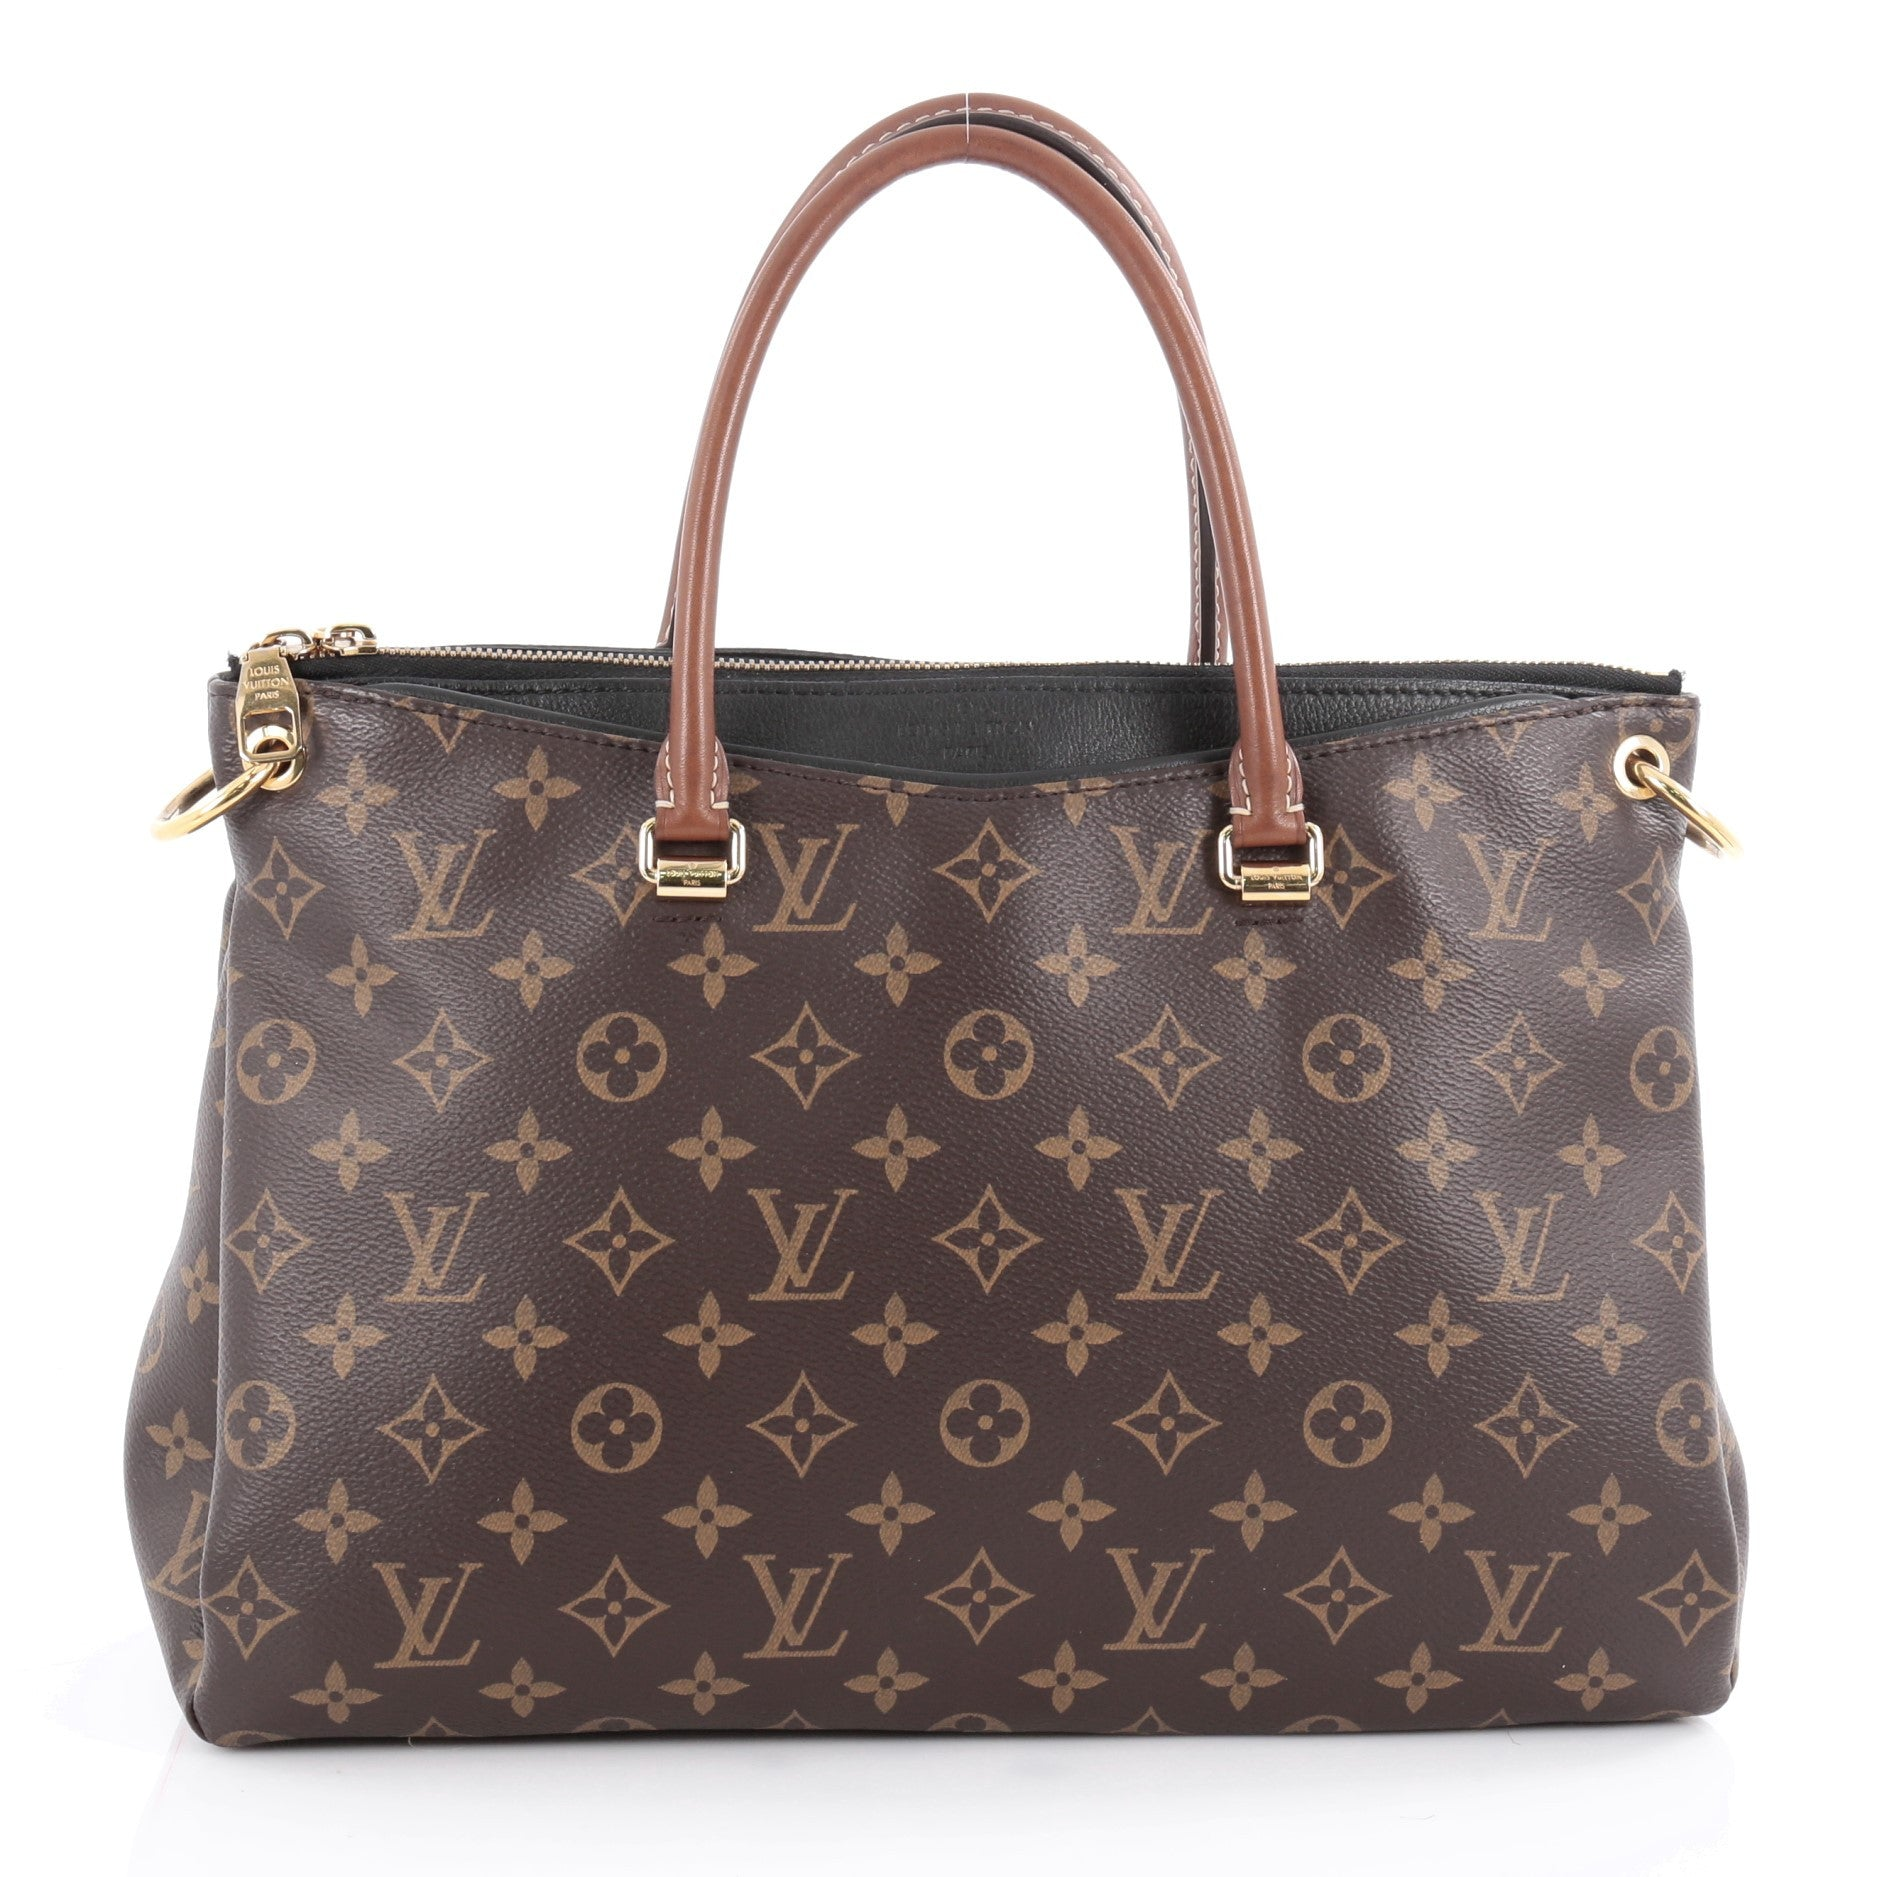 811818a589cbac 20540-01_Louis_Vuitton_Pallas_Tote_Monogram_Canvas_2D_0003.jpg?v=1499762712